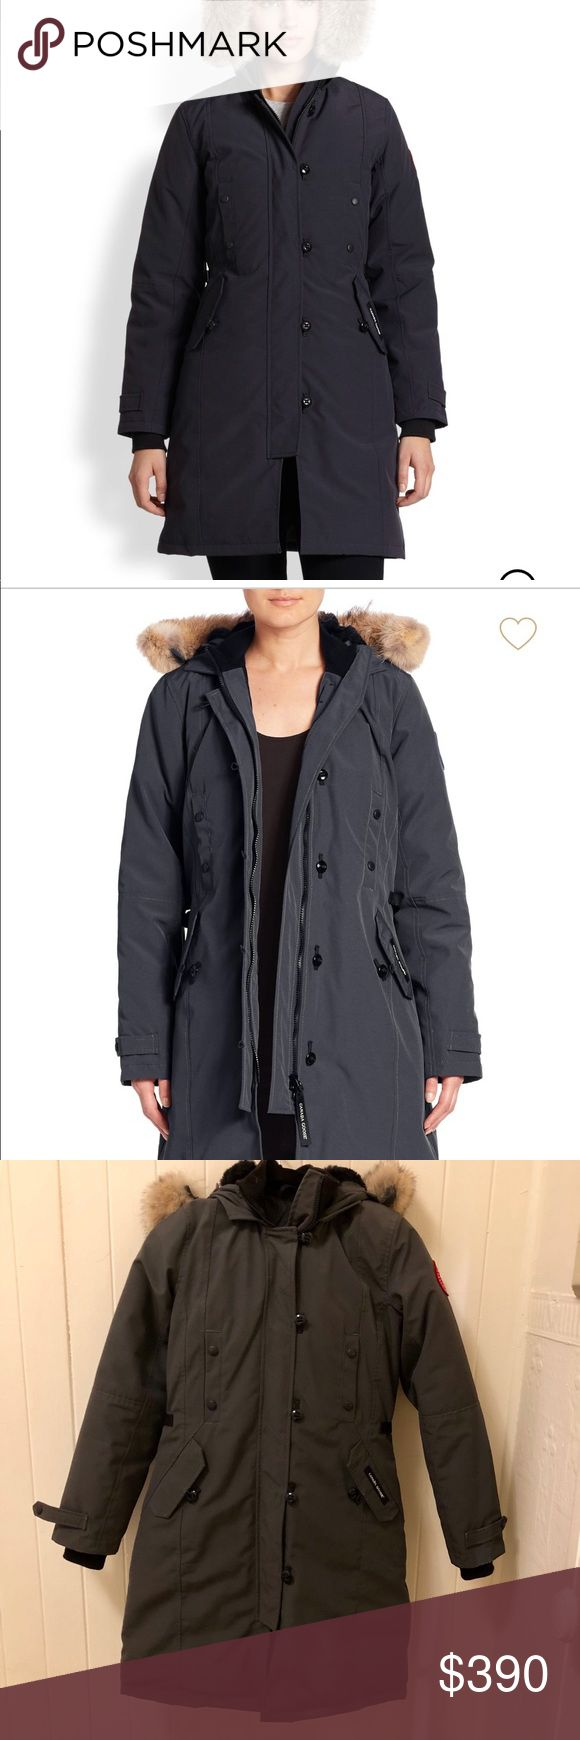 Canada Goose Parka Brand New W/O Tags  Canada Goose Kensington Fur-Trimmed Parka Retail Price: $895+Tax  I love this jacket, but I bought it for a trip and do not need it for California weather Canada Goose Jackets & Coats Puffers